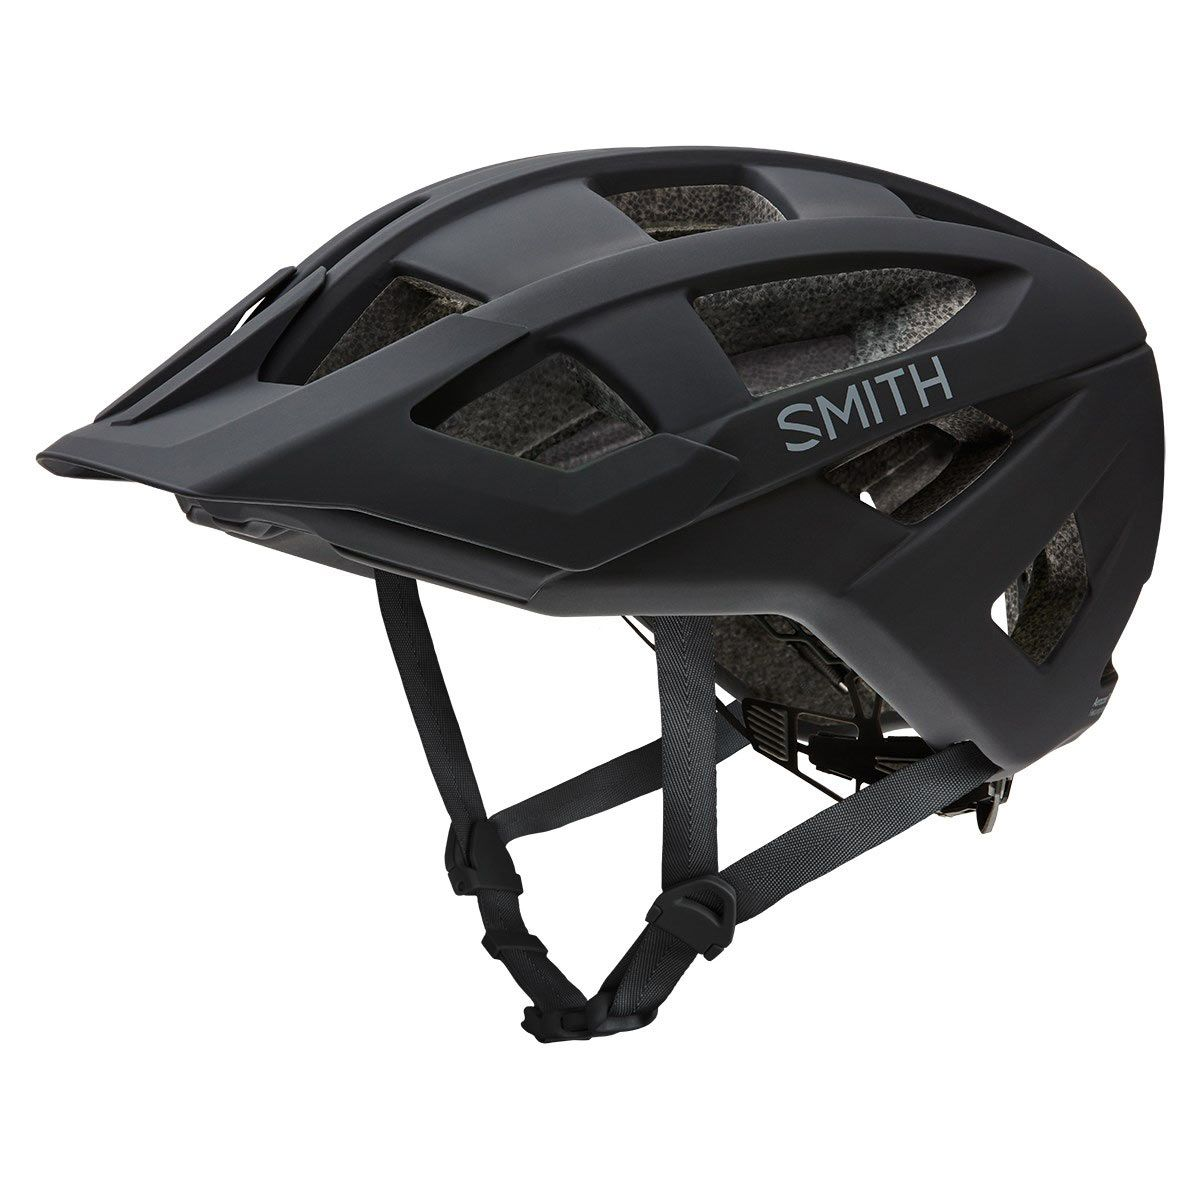 Smith Venture Mips Bike Helmet Products In 2019 Cycling Helmet